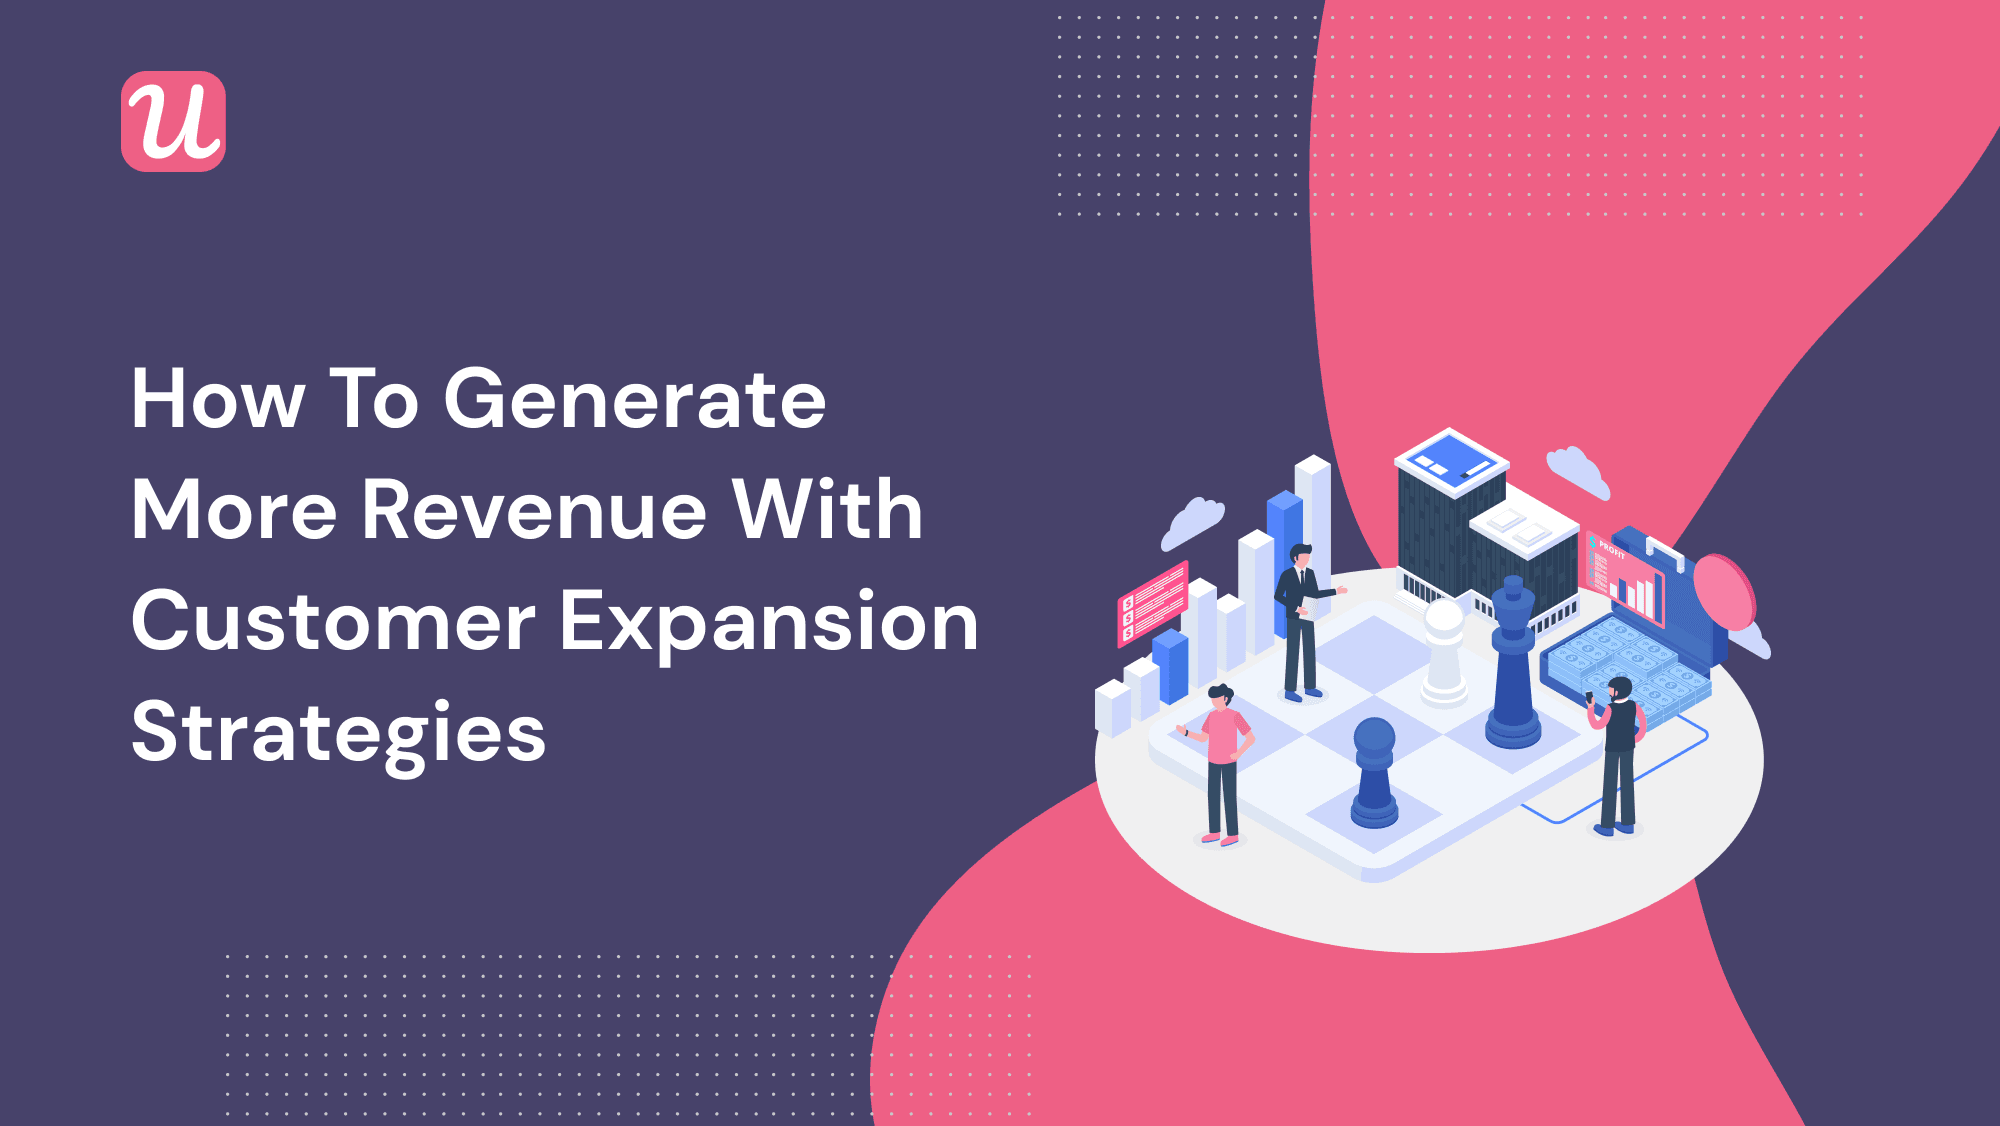 How To Generate More Revenue With Customer Expansion Strategies